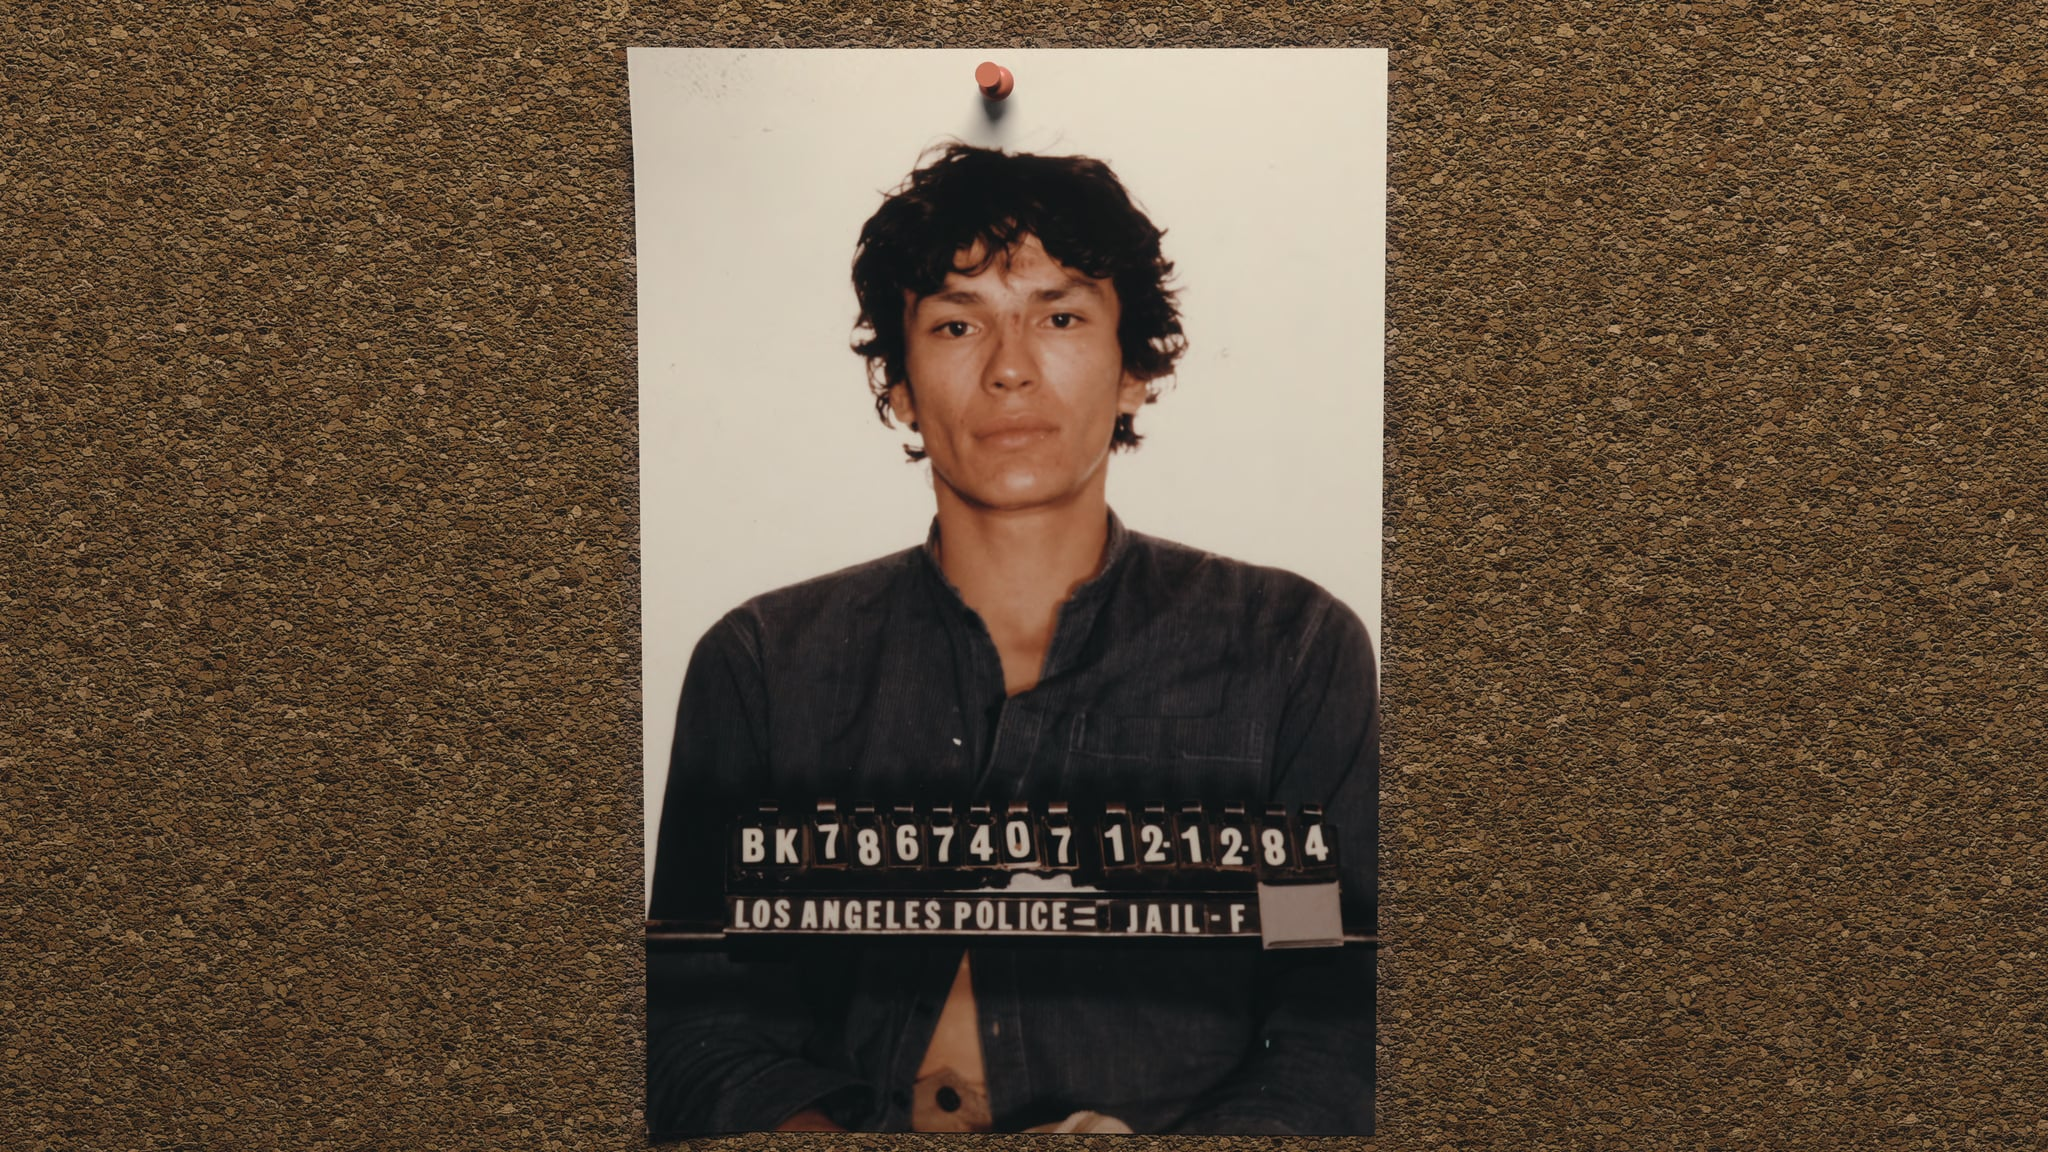 Richard Ramirez (The Night Stalker) in episode 4